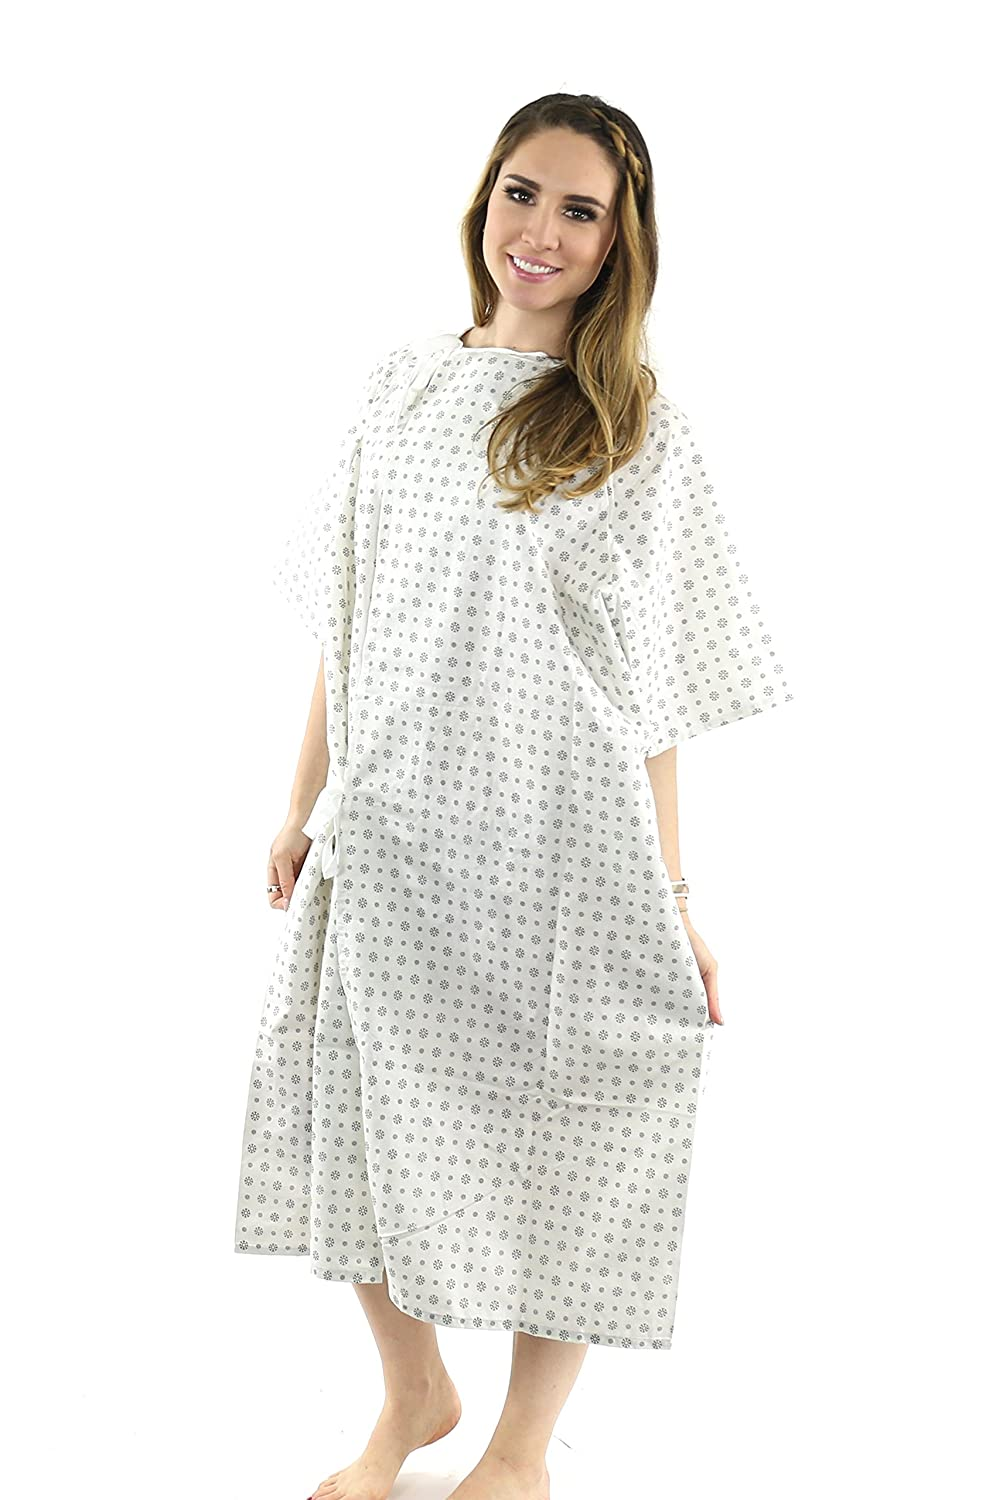 Amazon.com: Hospital Gown (6 Pack) Cotton Blend , Useful ...